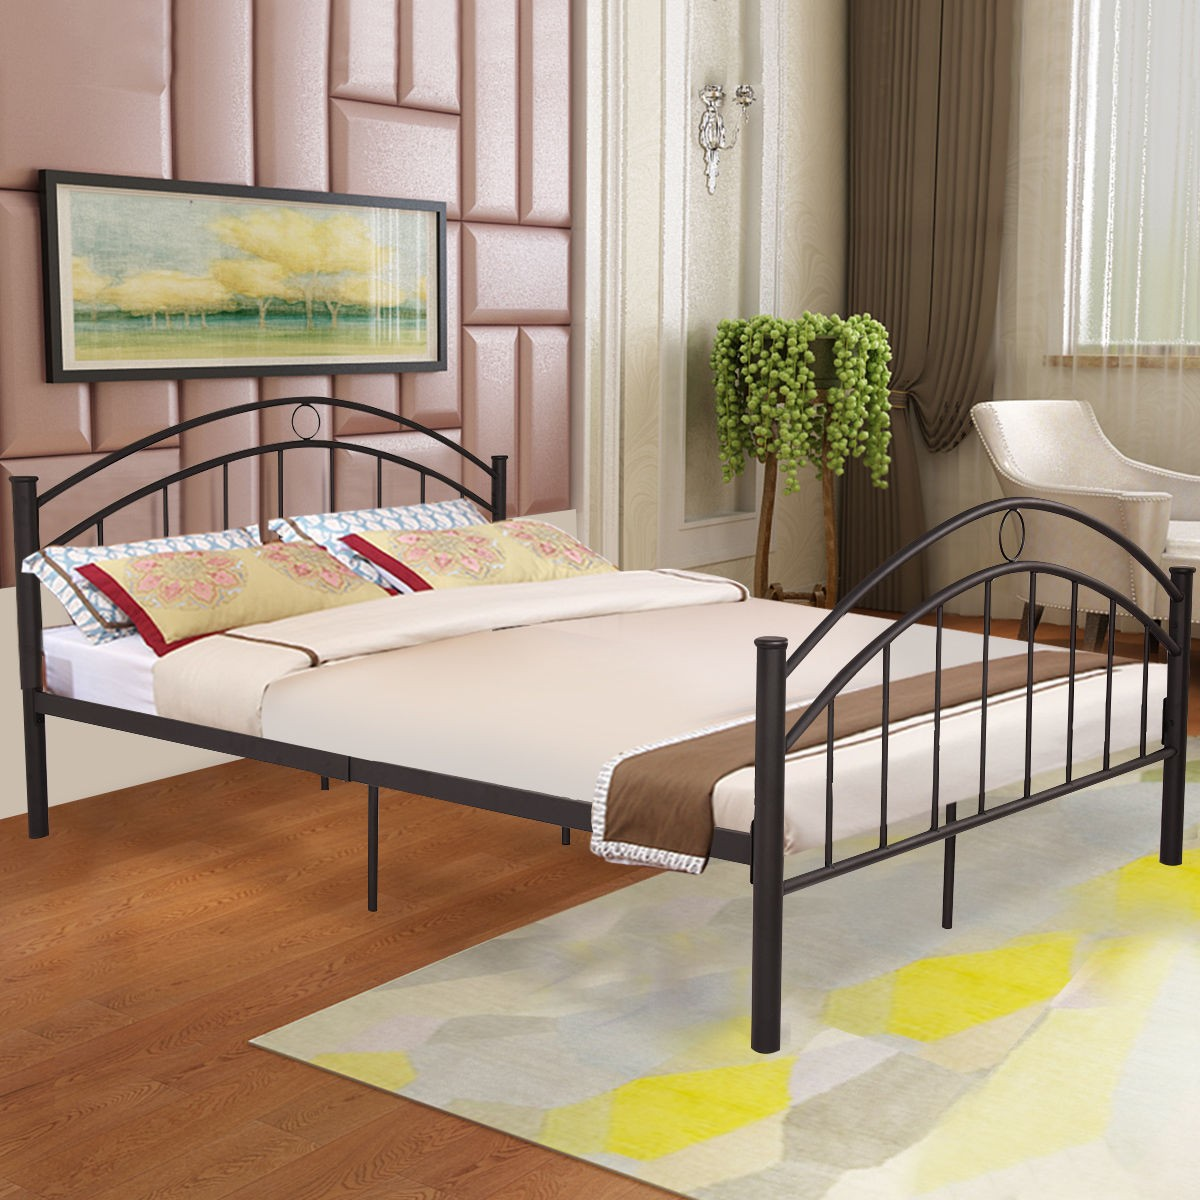 bedroom black metal bed frame queen size mattress platform headboard furniture ebay. Black Bedroom Furniture Sets. Home Design Ideas